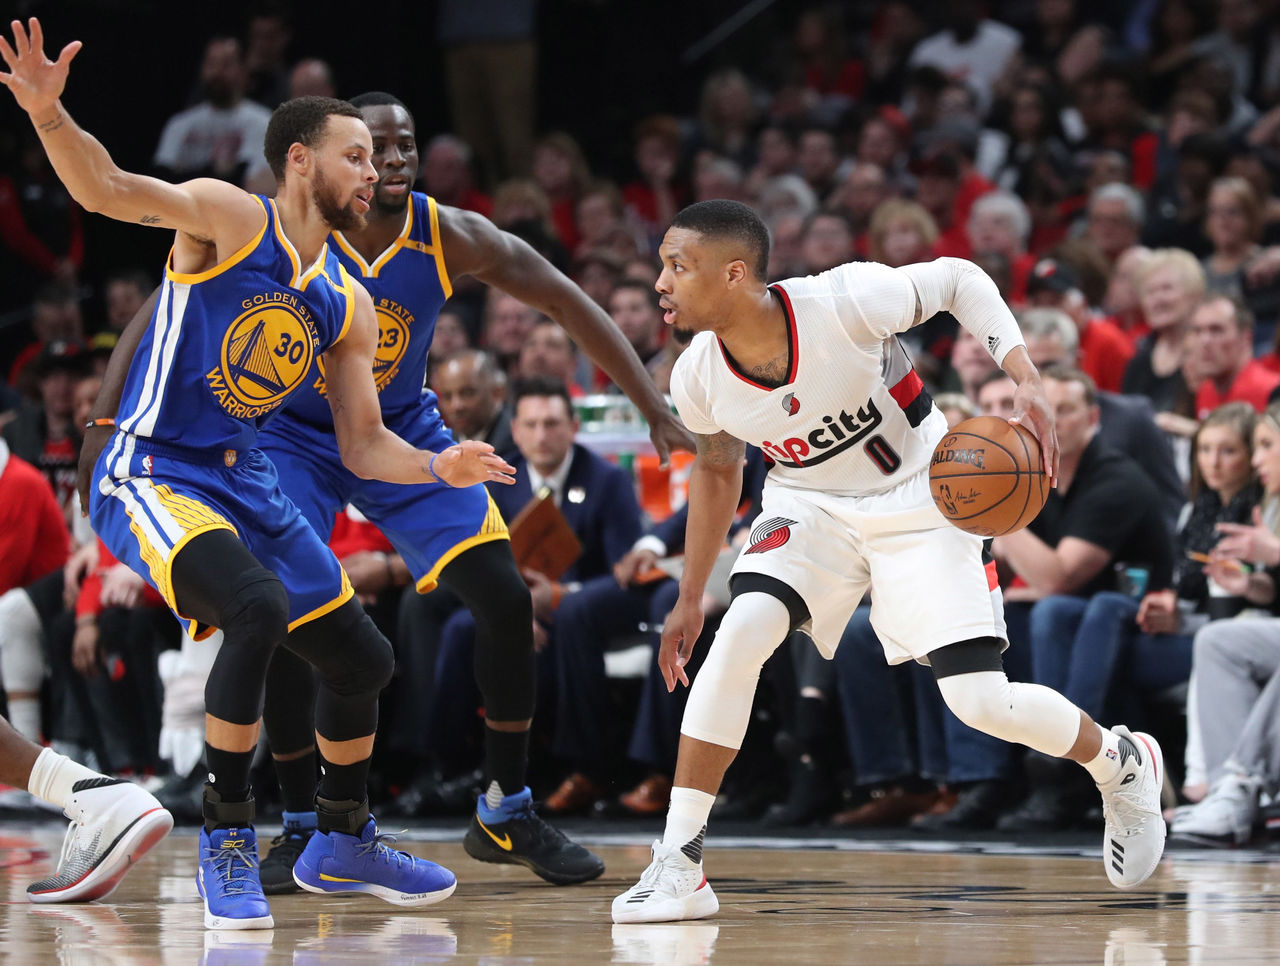 Cropped 2017 04 23t041846z 645552144 nocid rtrmadp 3 nba playoffs golden state warriors at portland trail blazers